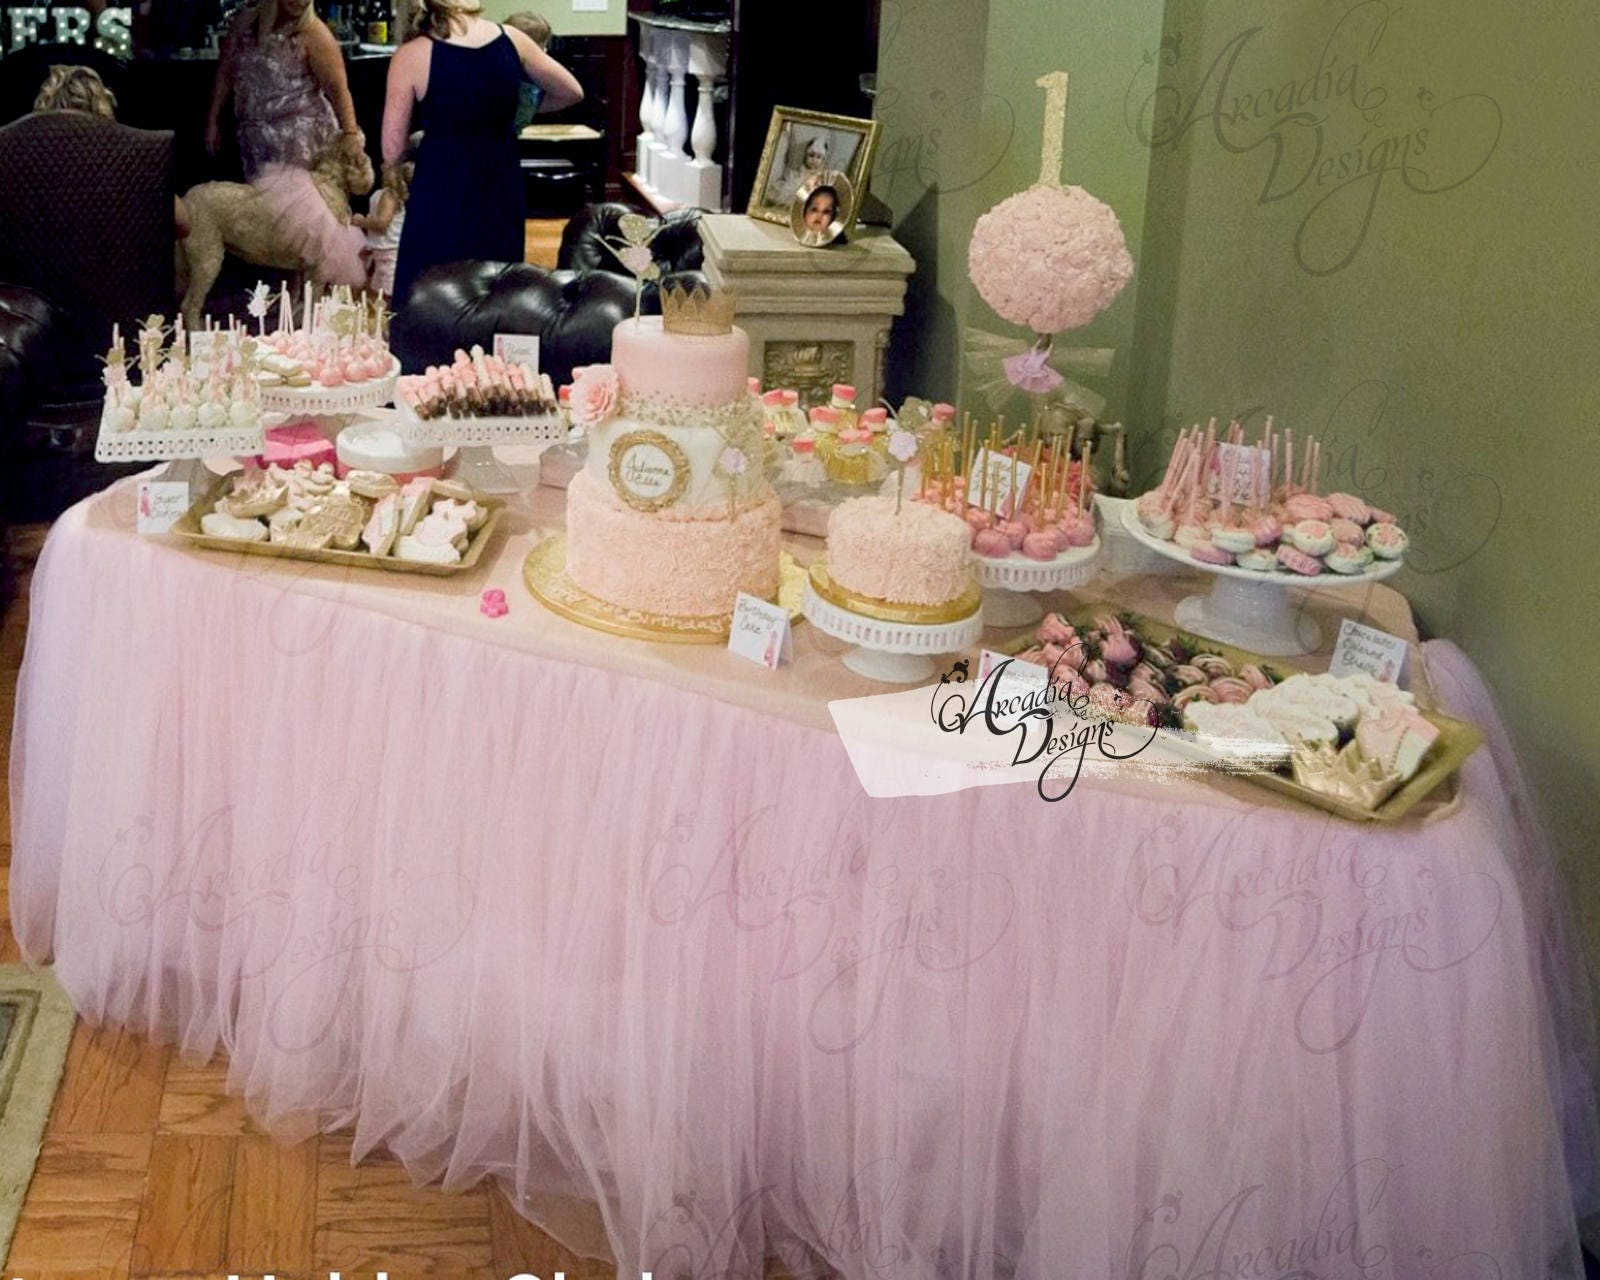 Etsy product birthday party ideas themes for Decoration sweet table